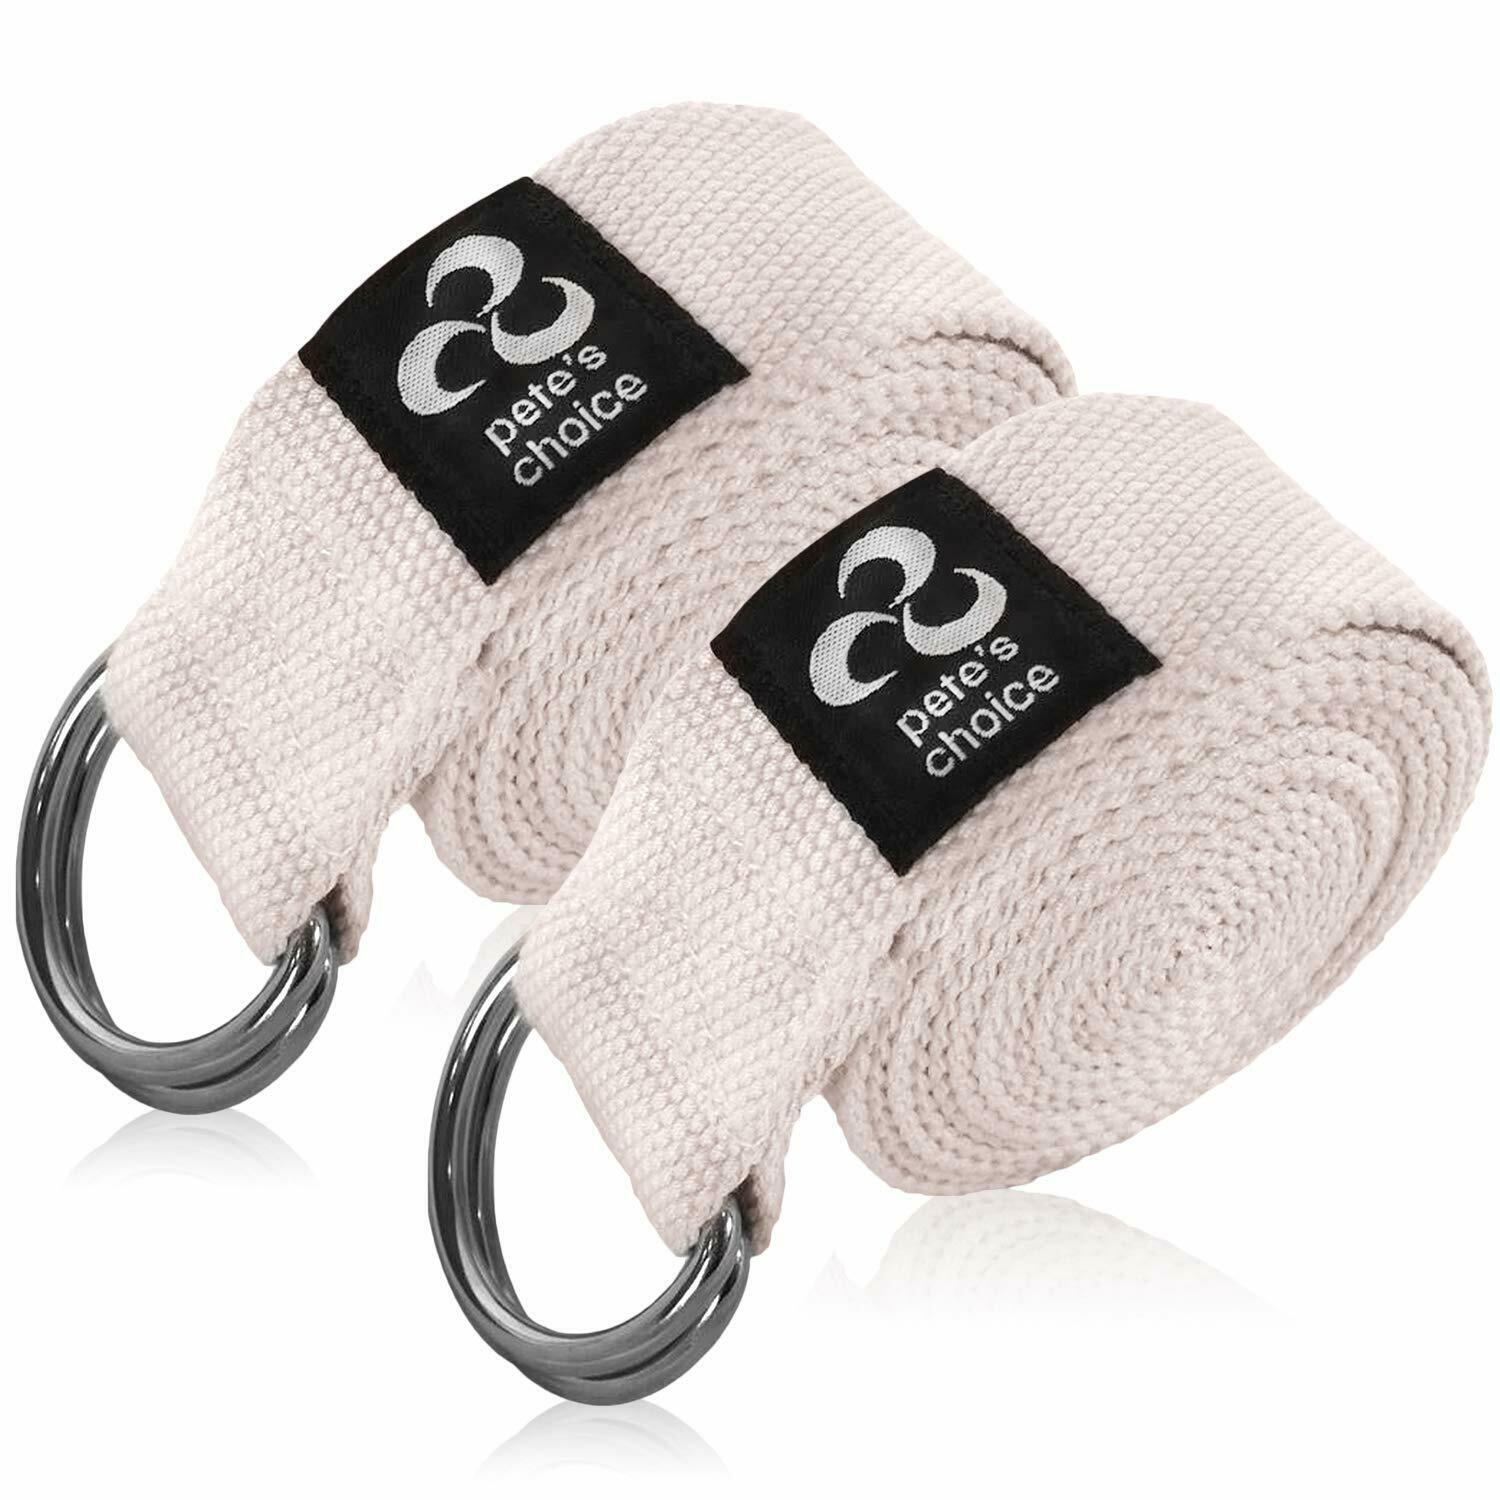 Pete's Choice 2 Pack Yoga Exercise Adjustable Straps 8Ft